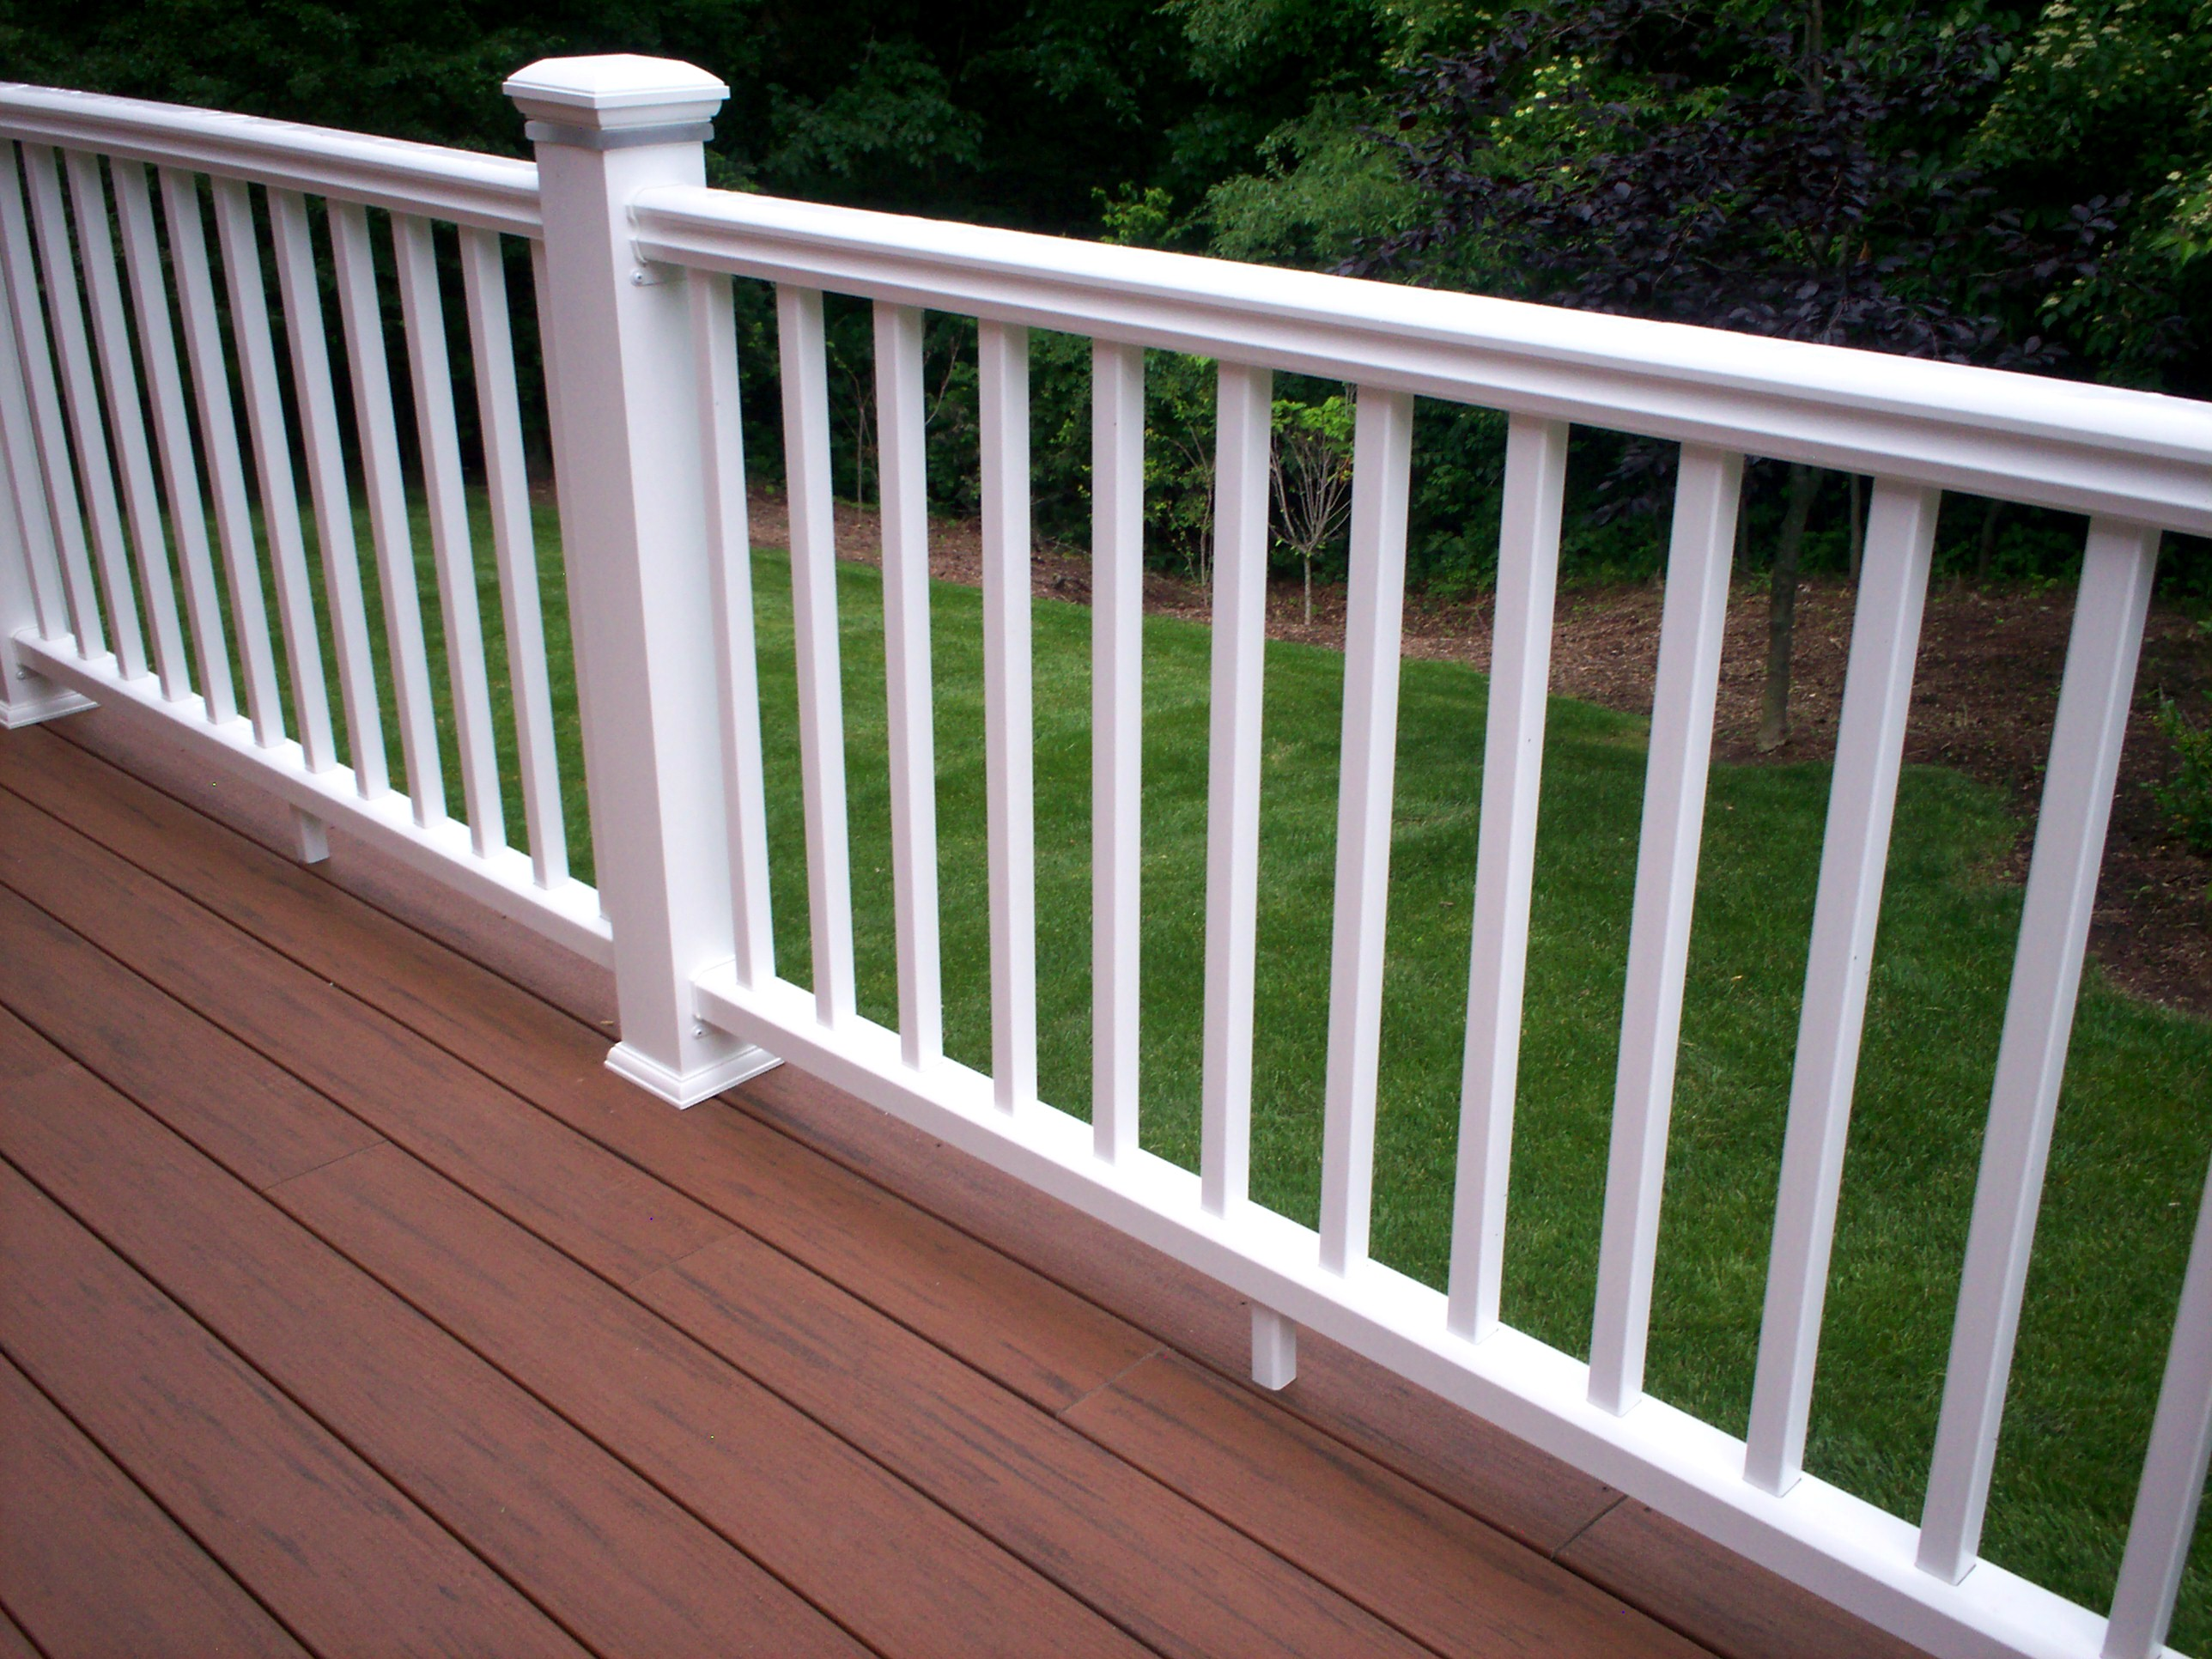 Timbertech decking why we love it and you should too st louis decks screened porches - Vinyl railing reviews ...